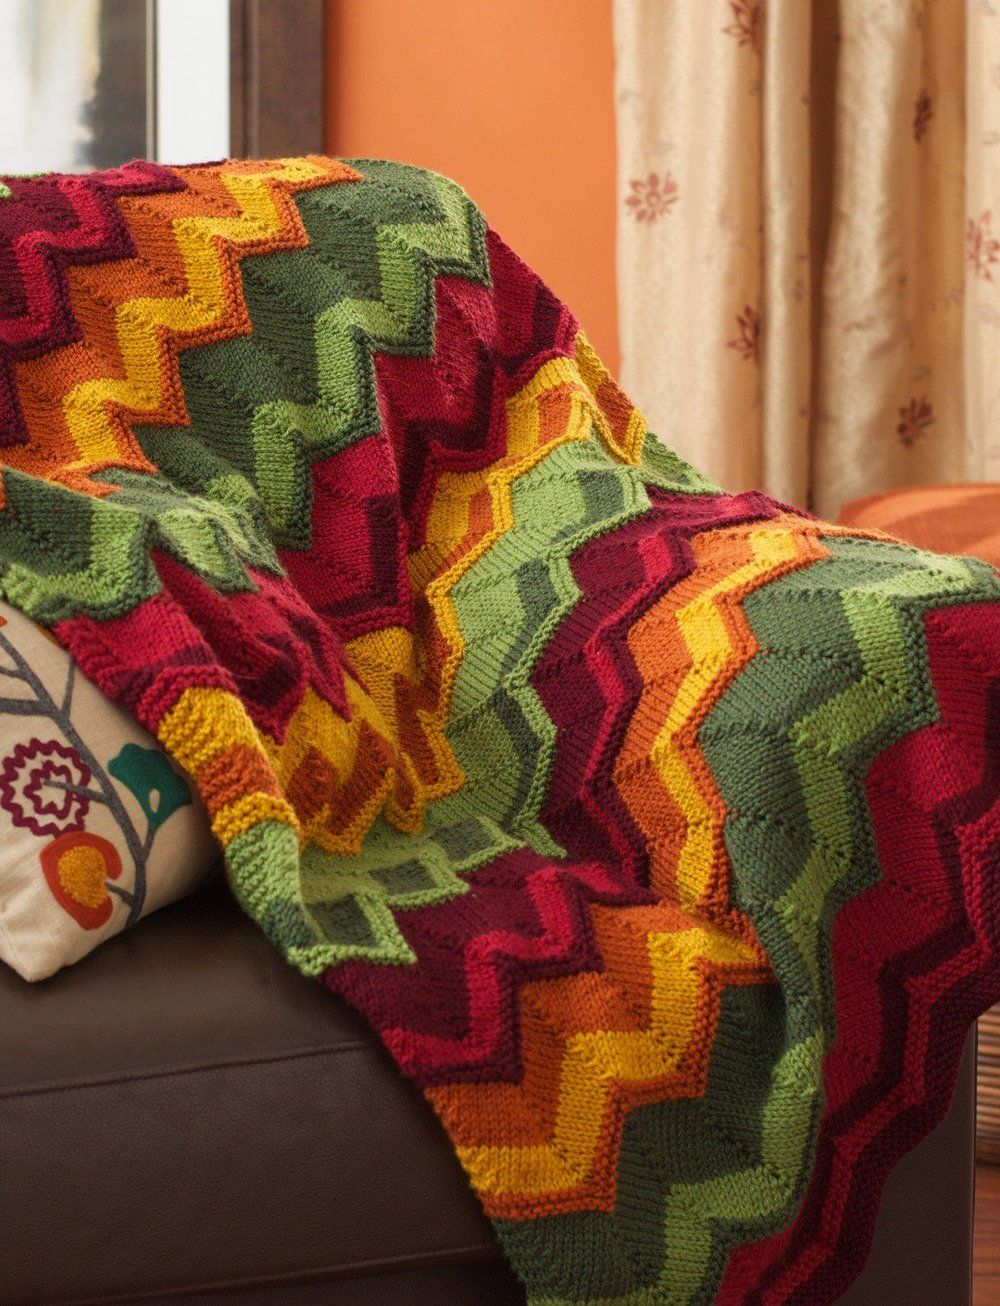 Thanksgiving throw thanksgiving knitting blanket patterns and thanksgiving throw knitting blanketscrochet bankloansurffo Image collections